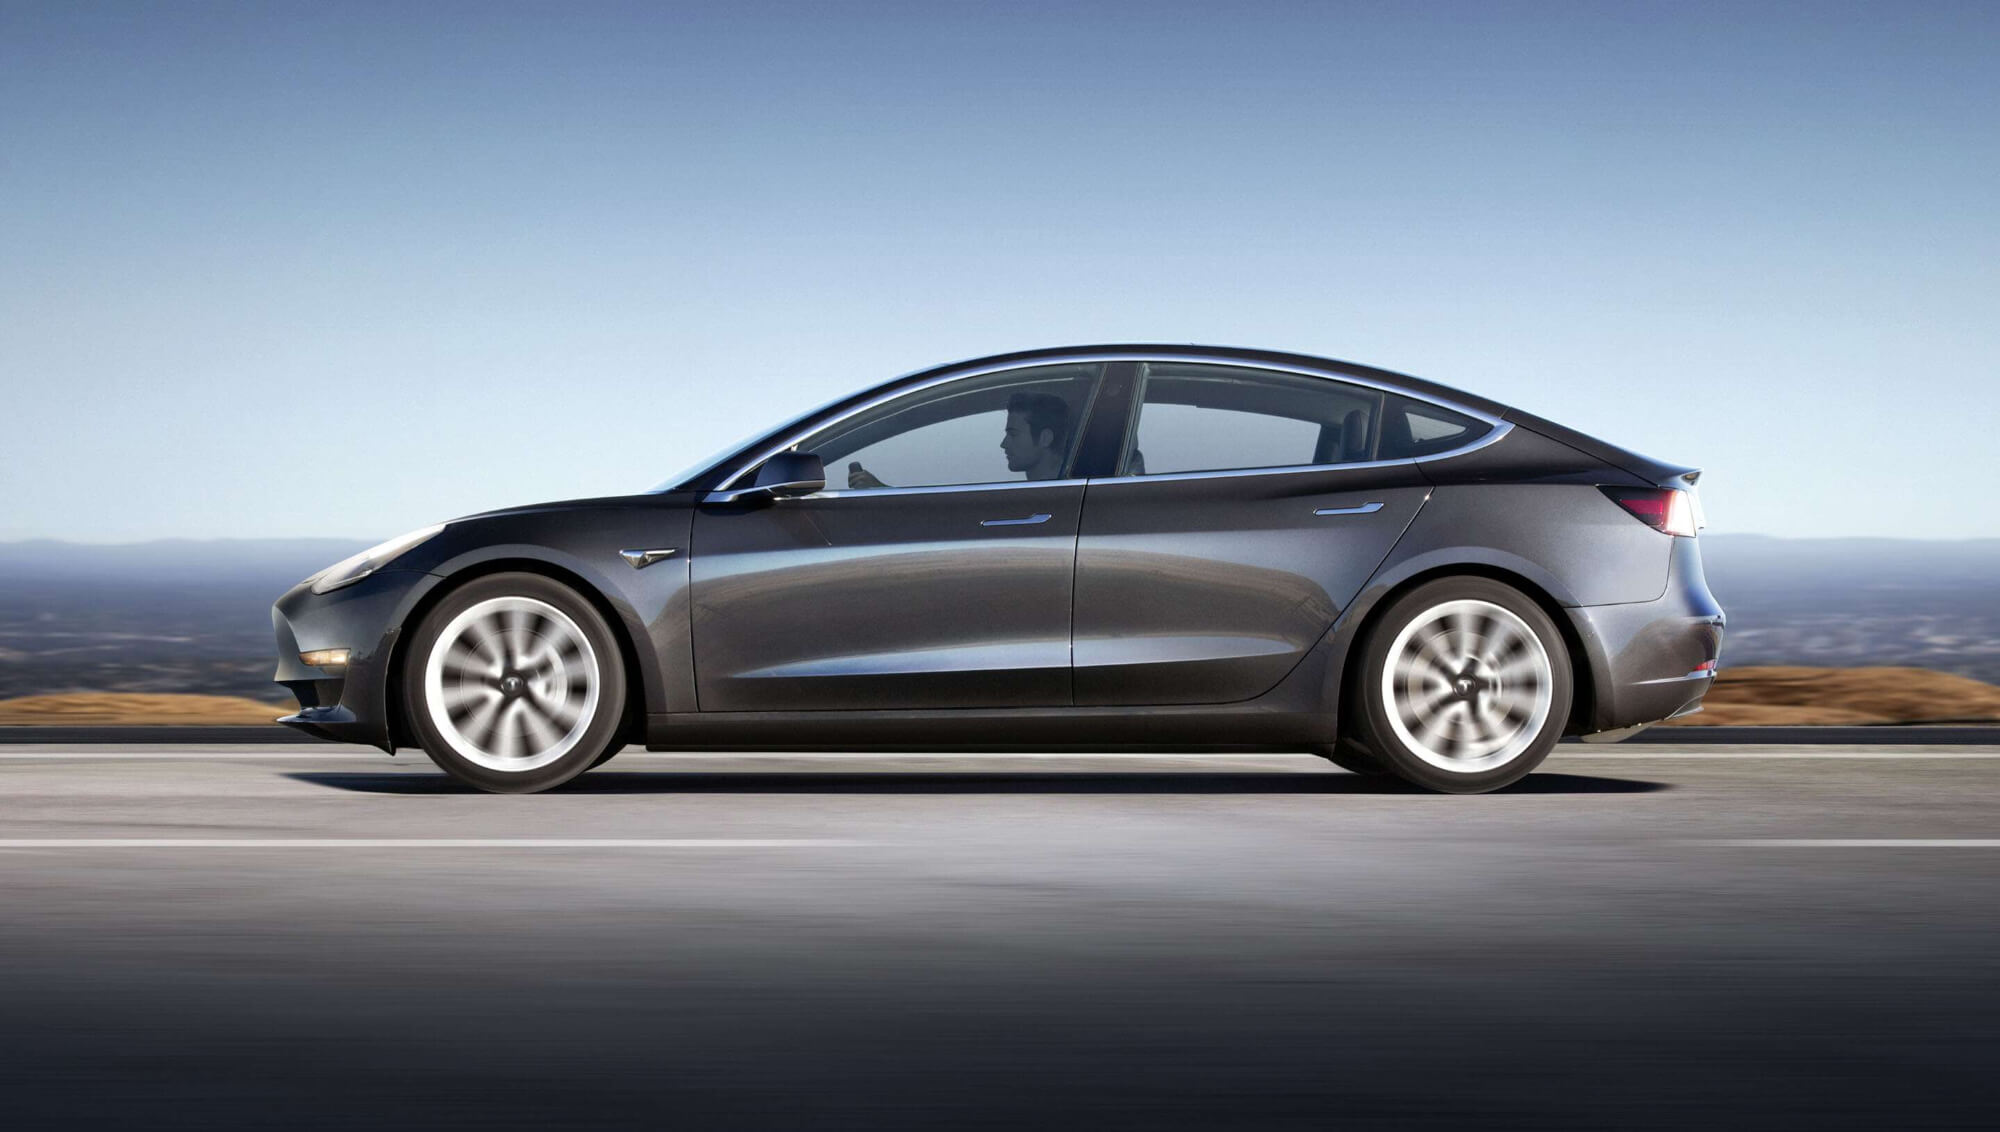 Tesla starts selling used Model 3 cars online